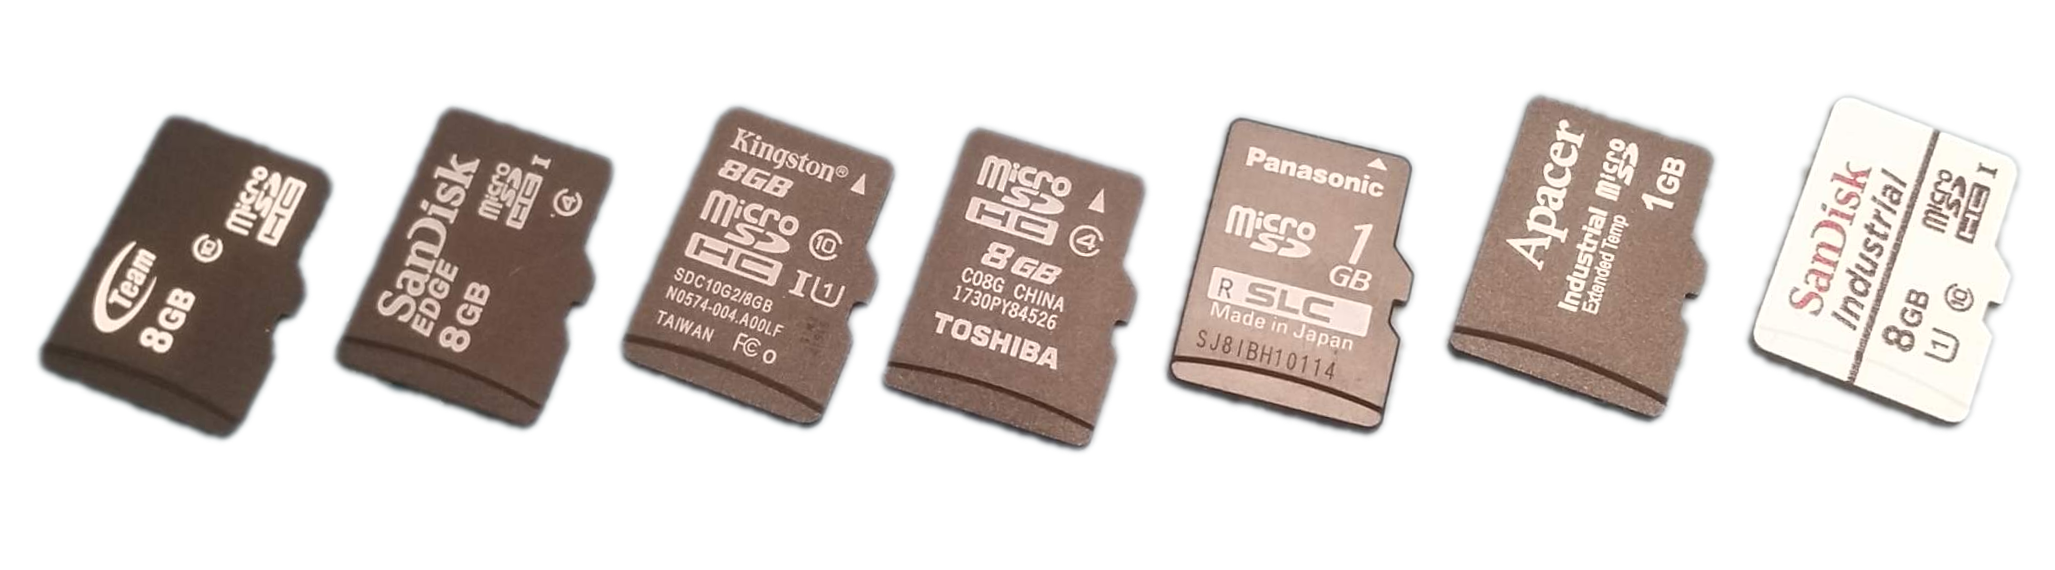 The MicroSD cards used in this benchmark